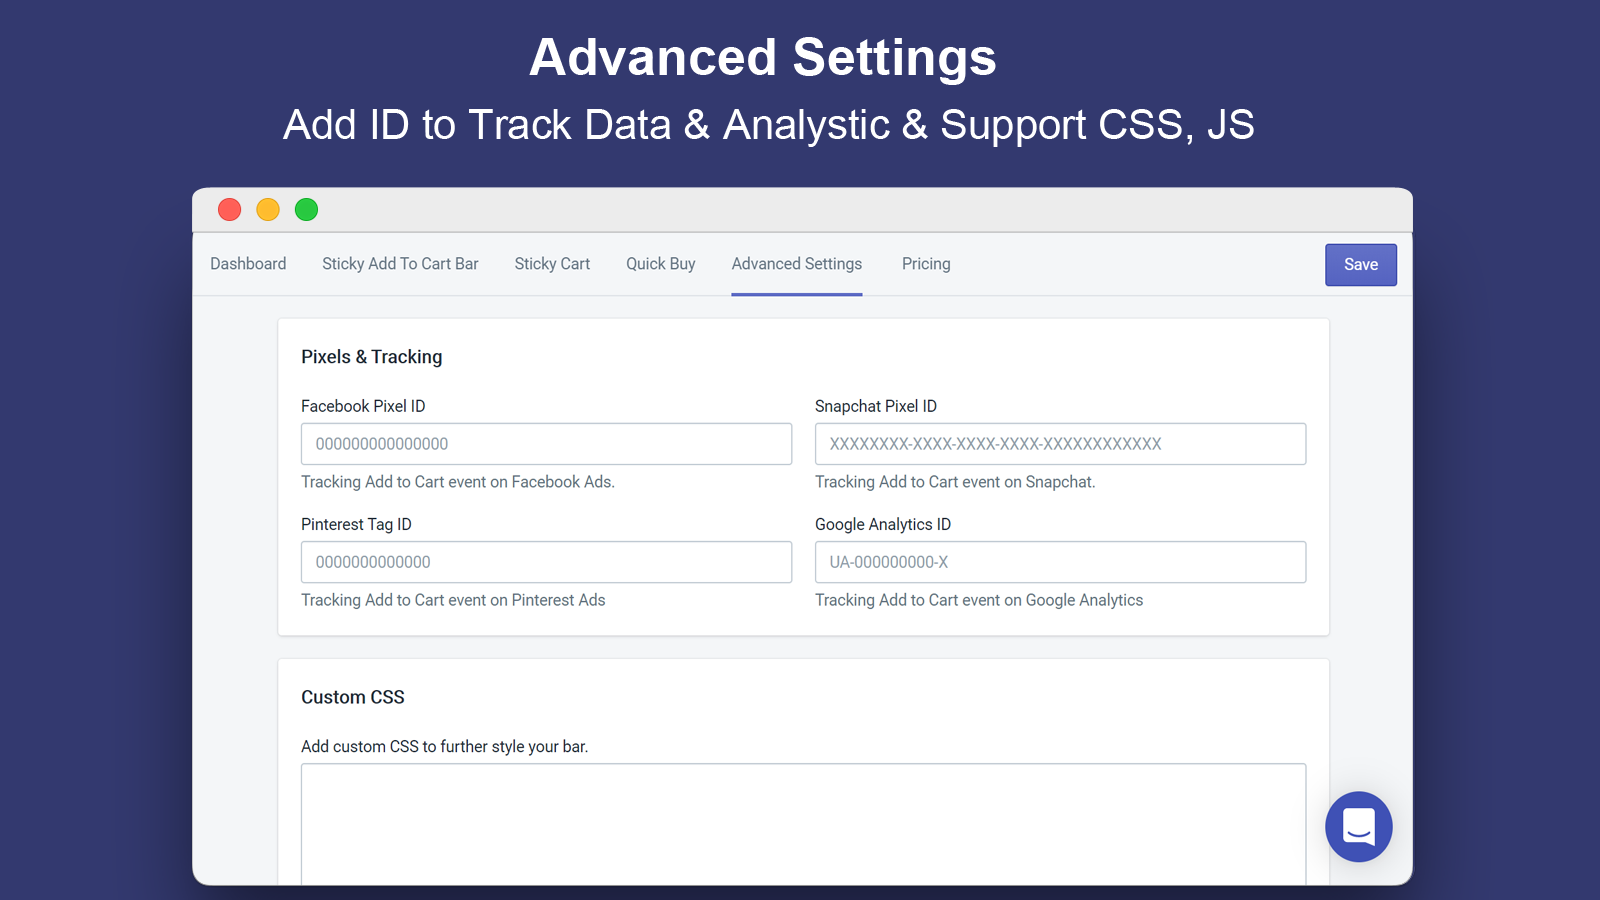 Add ID to Track Data & Analystic & Support CSS, JS